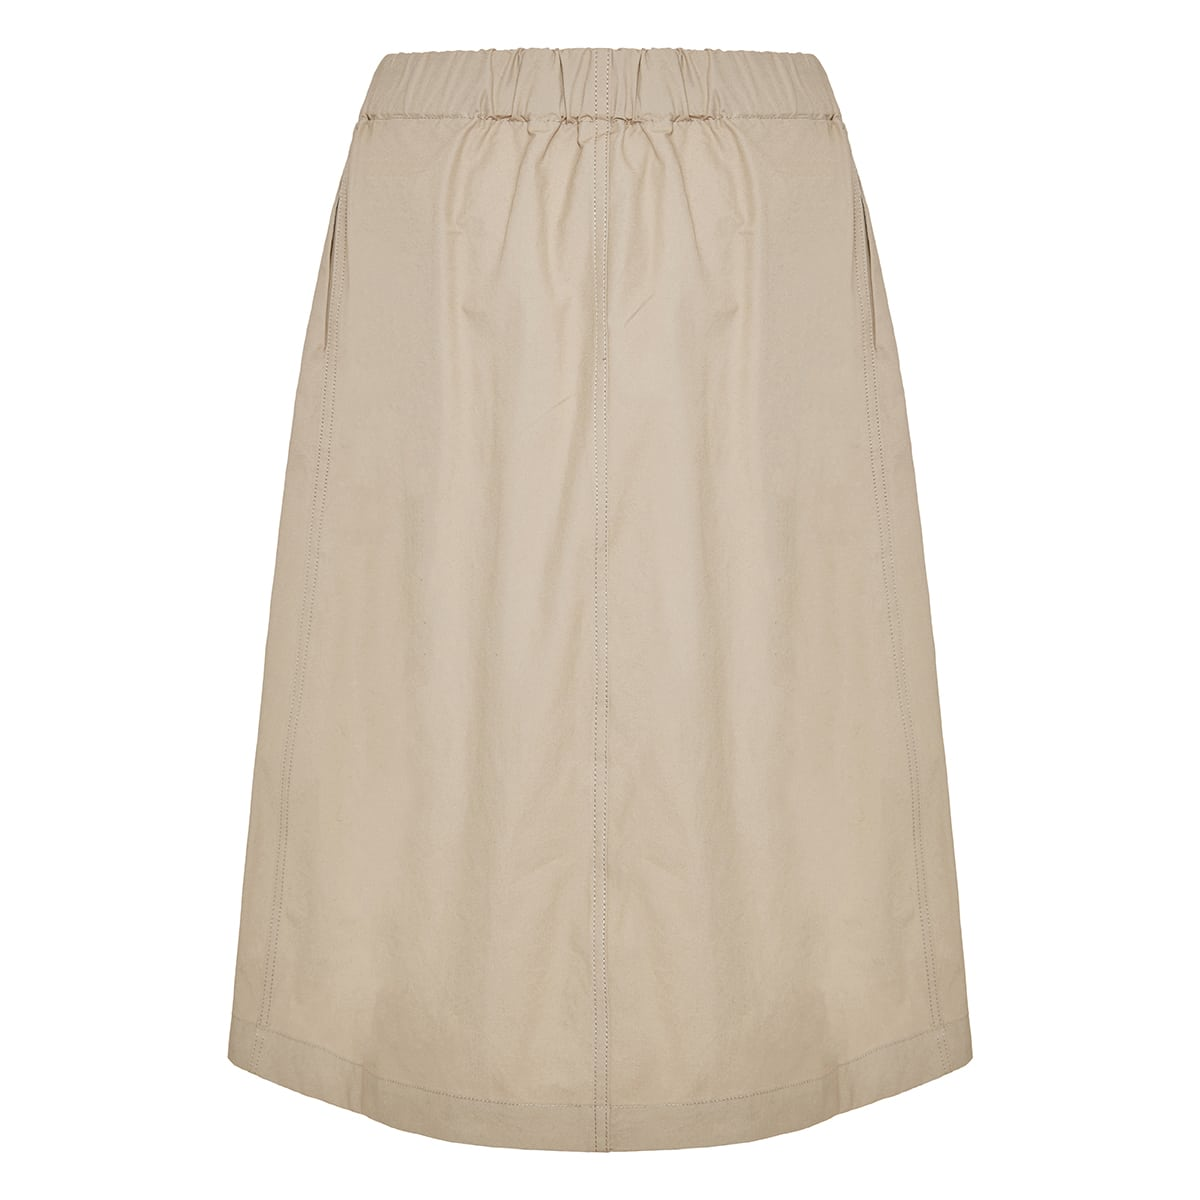 Belted cotton skirt